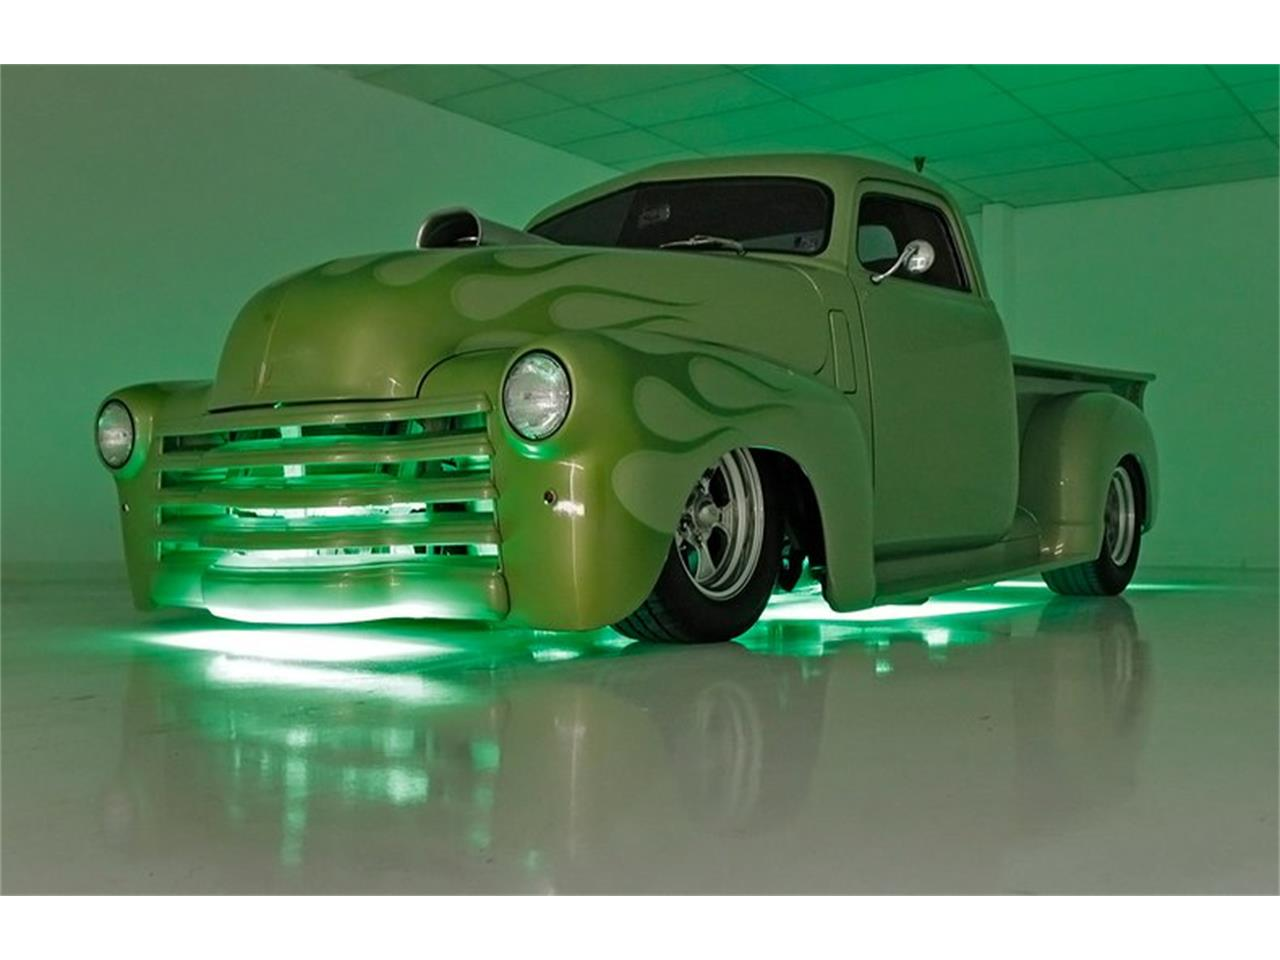 Large Picture of 1948 Chevrolet Pickup located in Morgantown Pennsylvania - $49,500.00 - PRWM